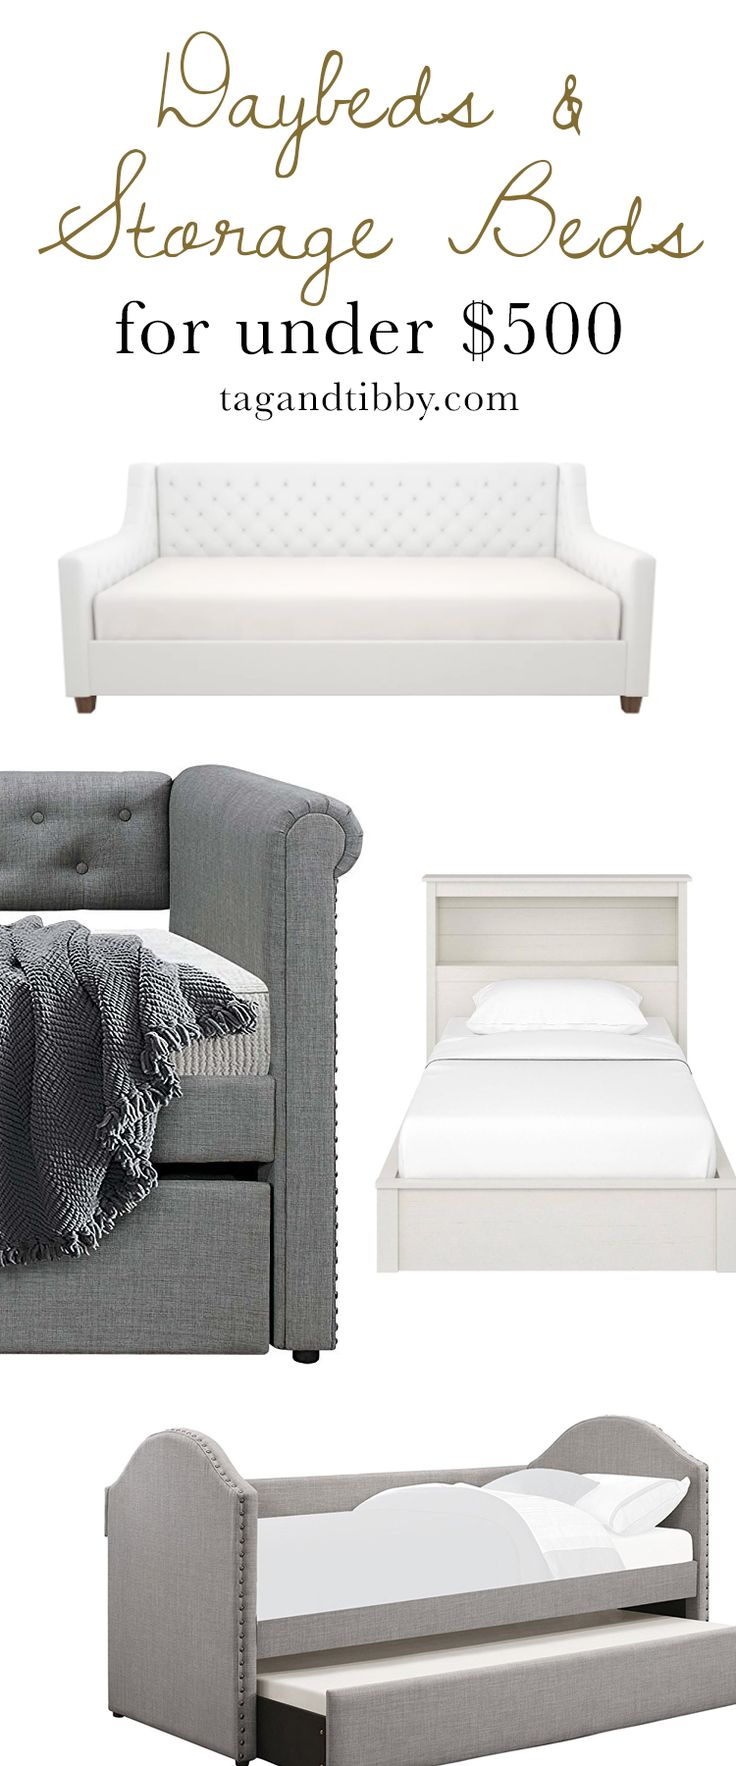 Diy Inspiration Daybeds: Home Decorating DIY Projects: Daybeds & Storage Beds For